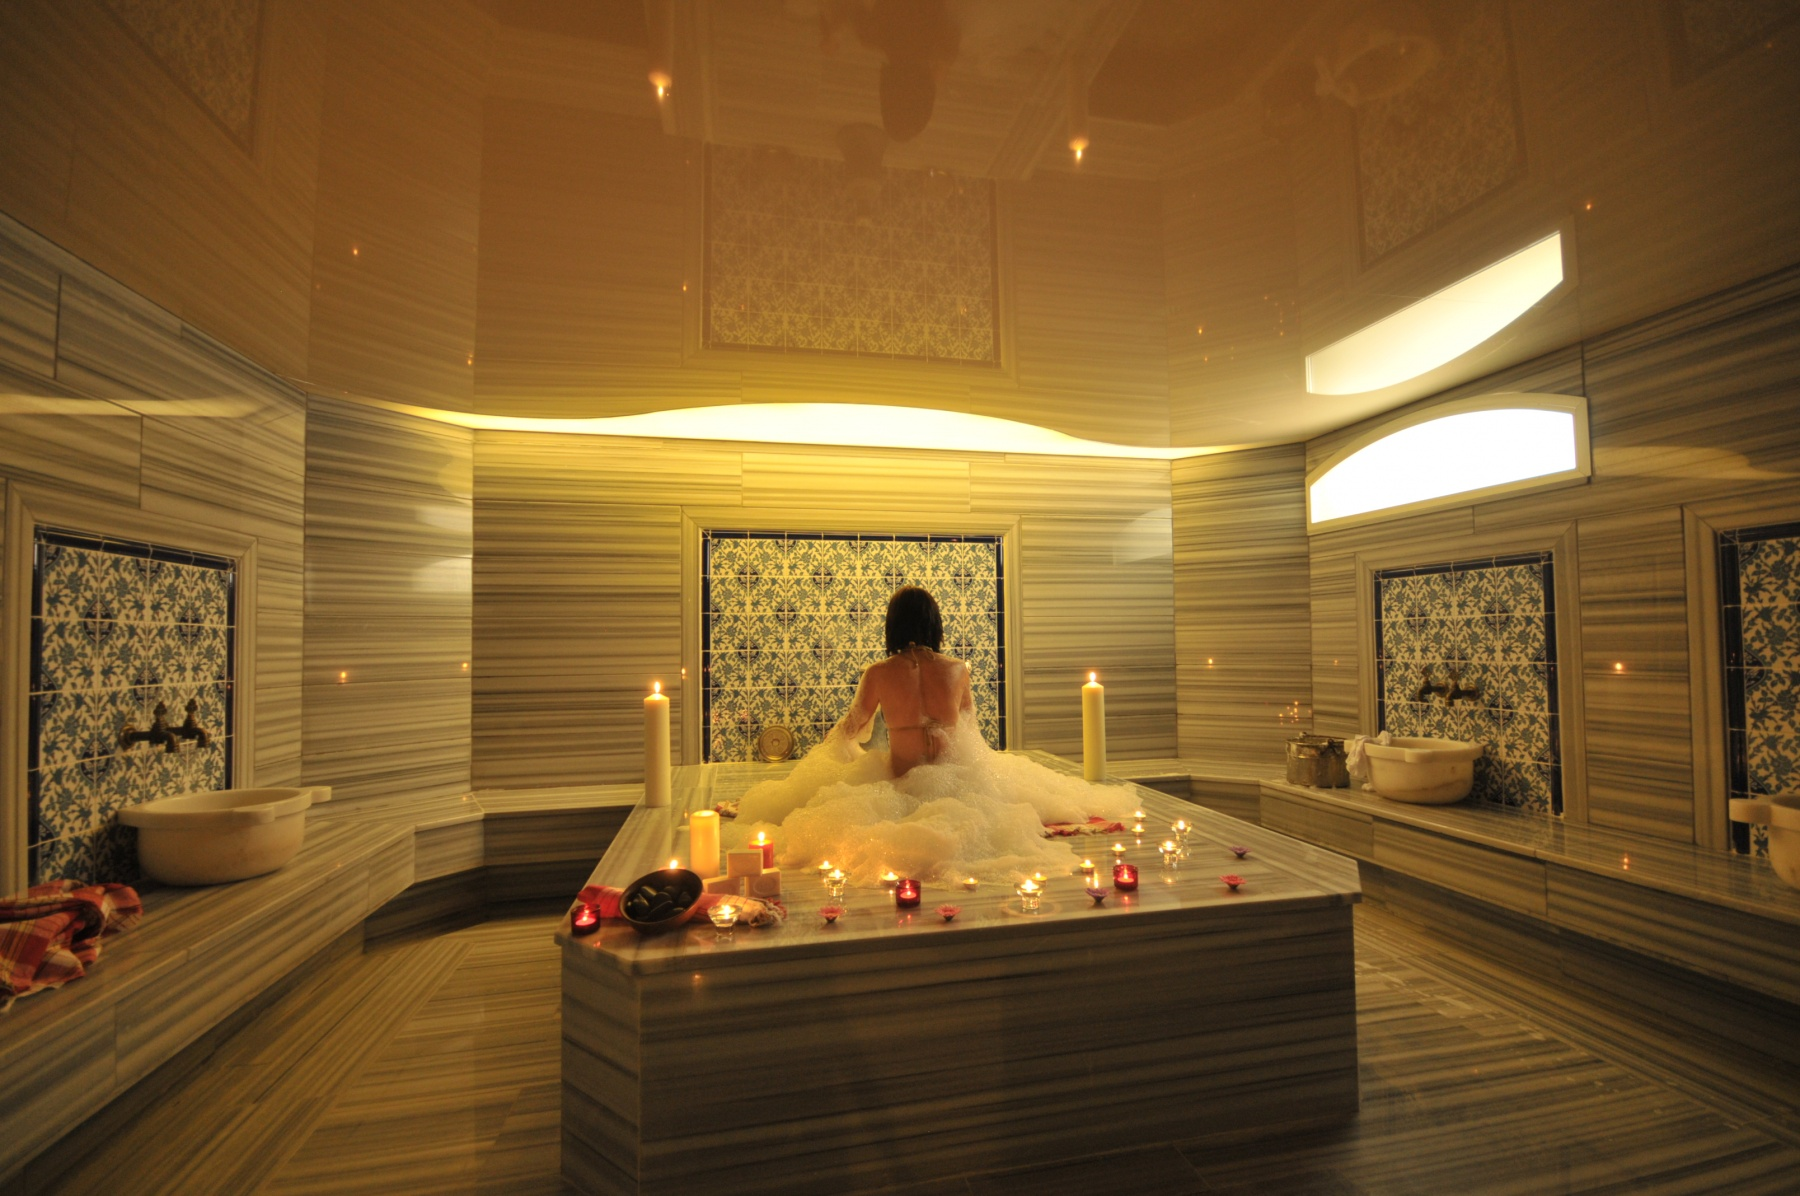 Surprising Turkish Bath Anytime Elf Tour Marmaris Tours And Excursions Inspirational Interior Design Netriciaus